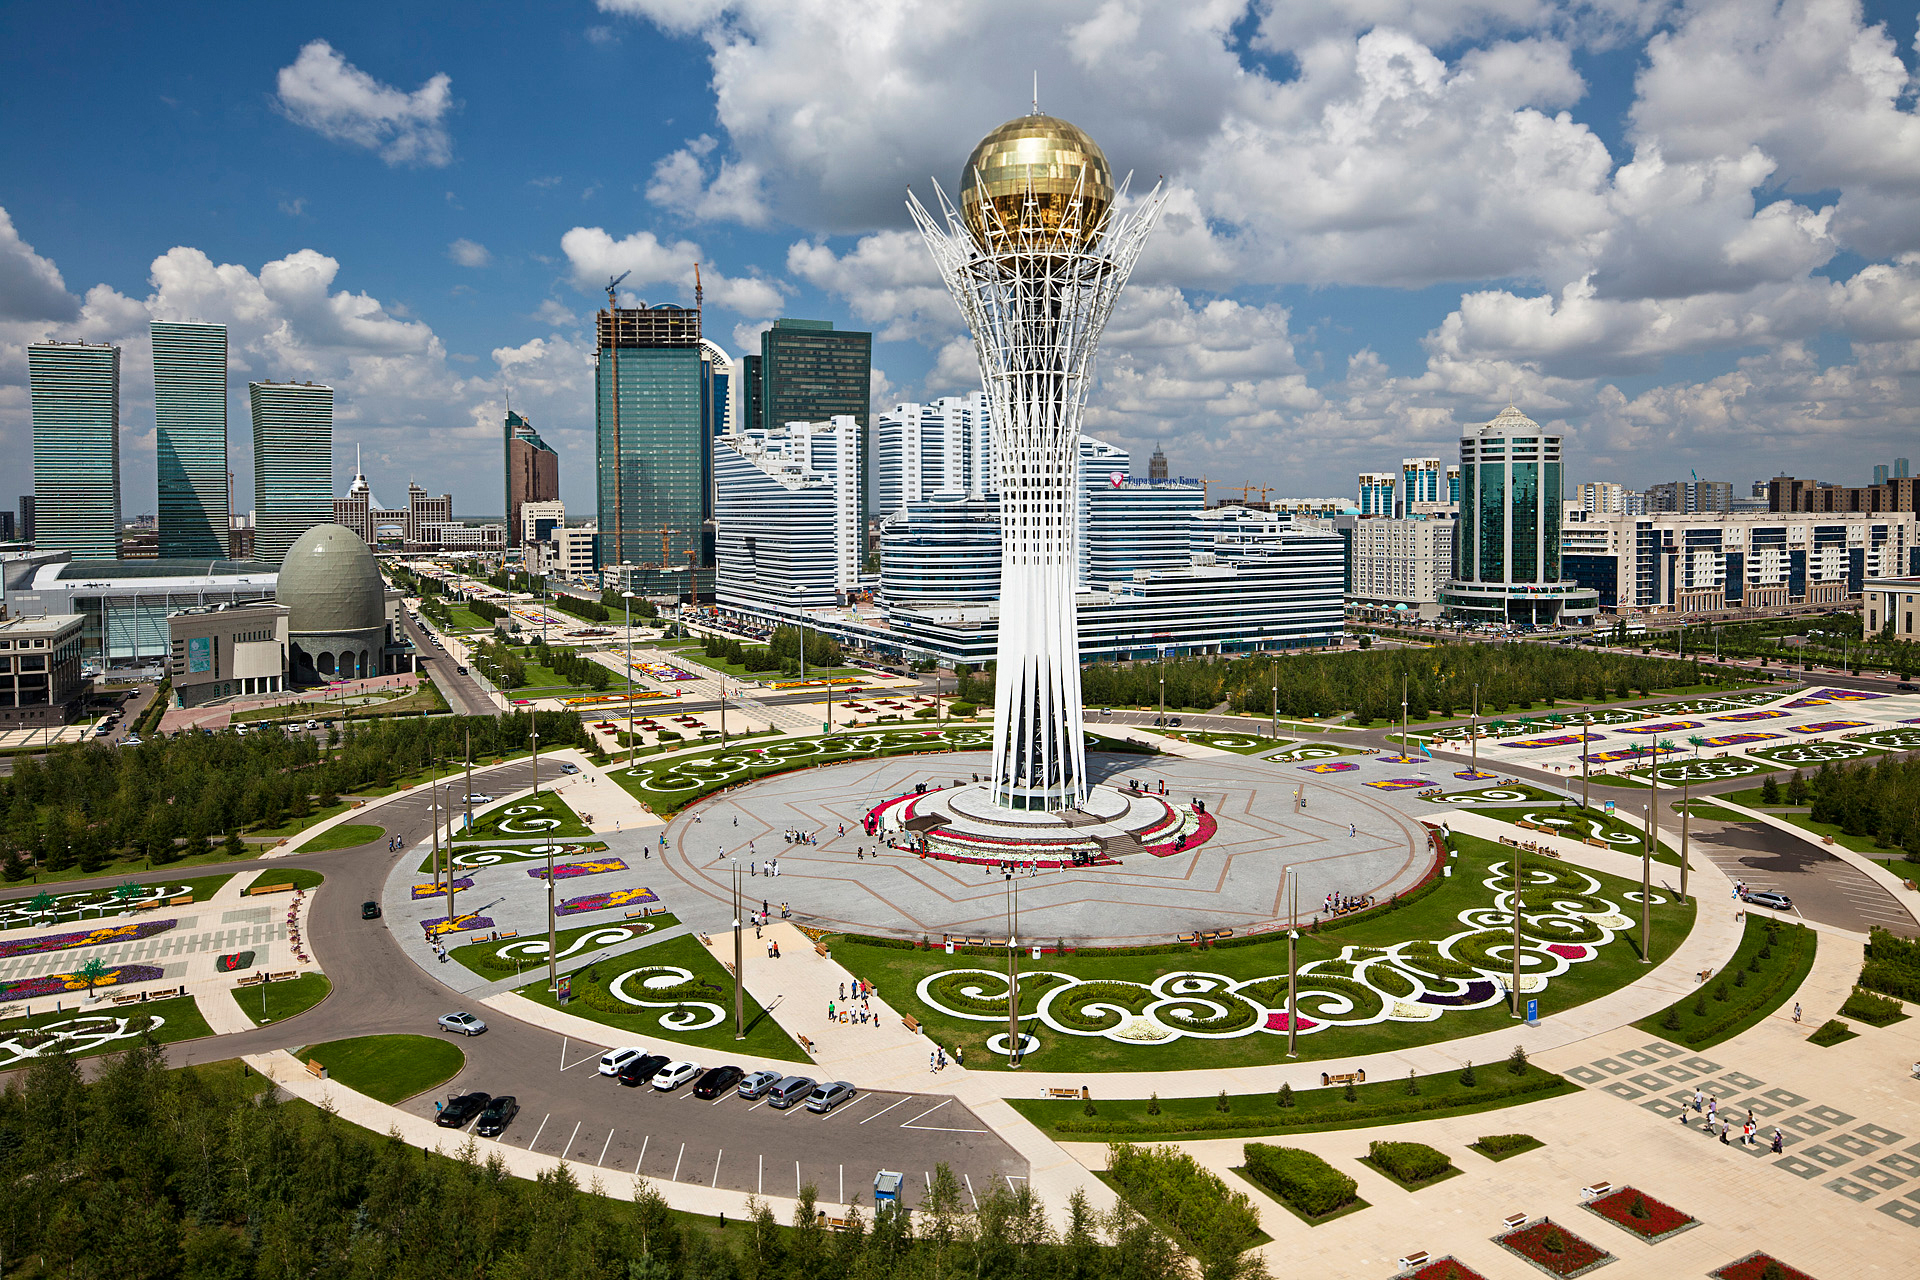 The Baiterek, towers over Astana's central promenade. Intended as a symbol of the new capital, the 318-foot monument evokes a giant tree with a golden egg in its branches. in the Kazakh myth of Samruk, a sacred bird lays a golden egg in the branches of a poplar tree each year.  Astana, Kazakhstan